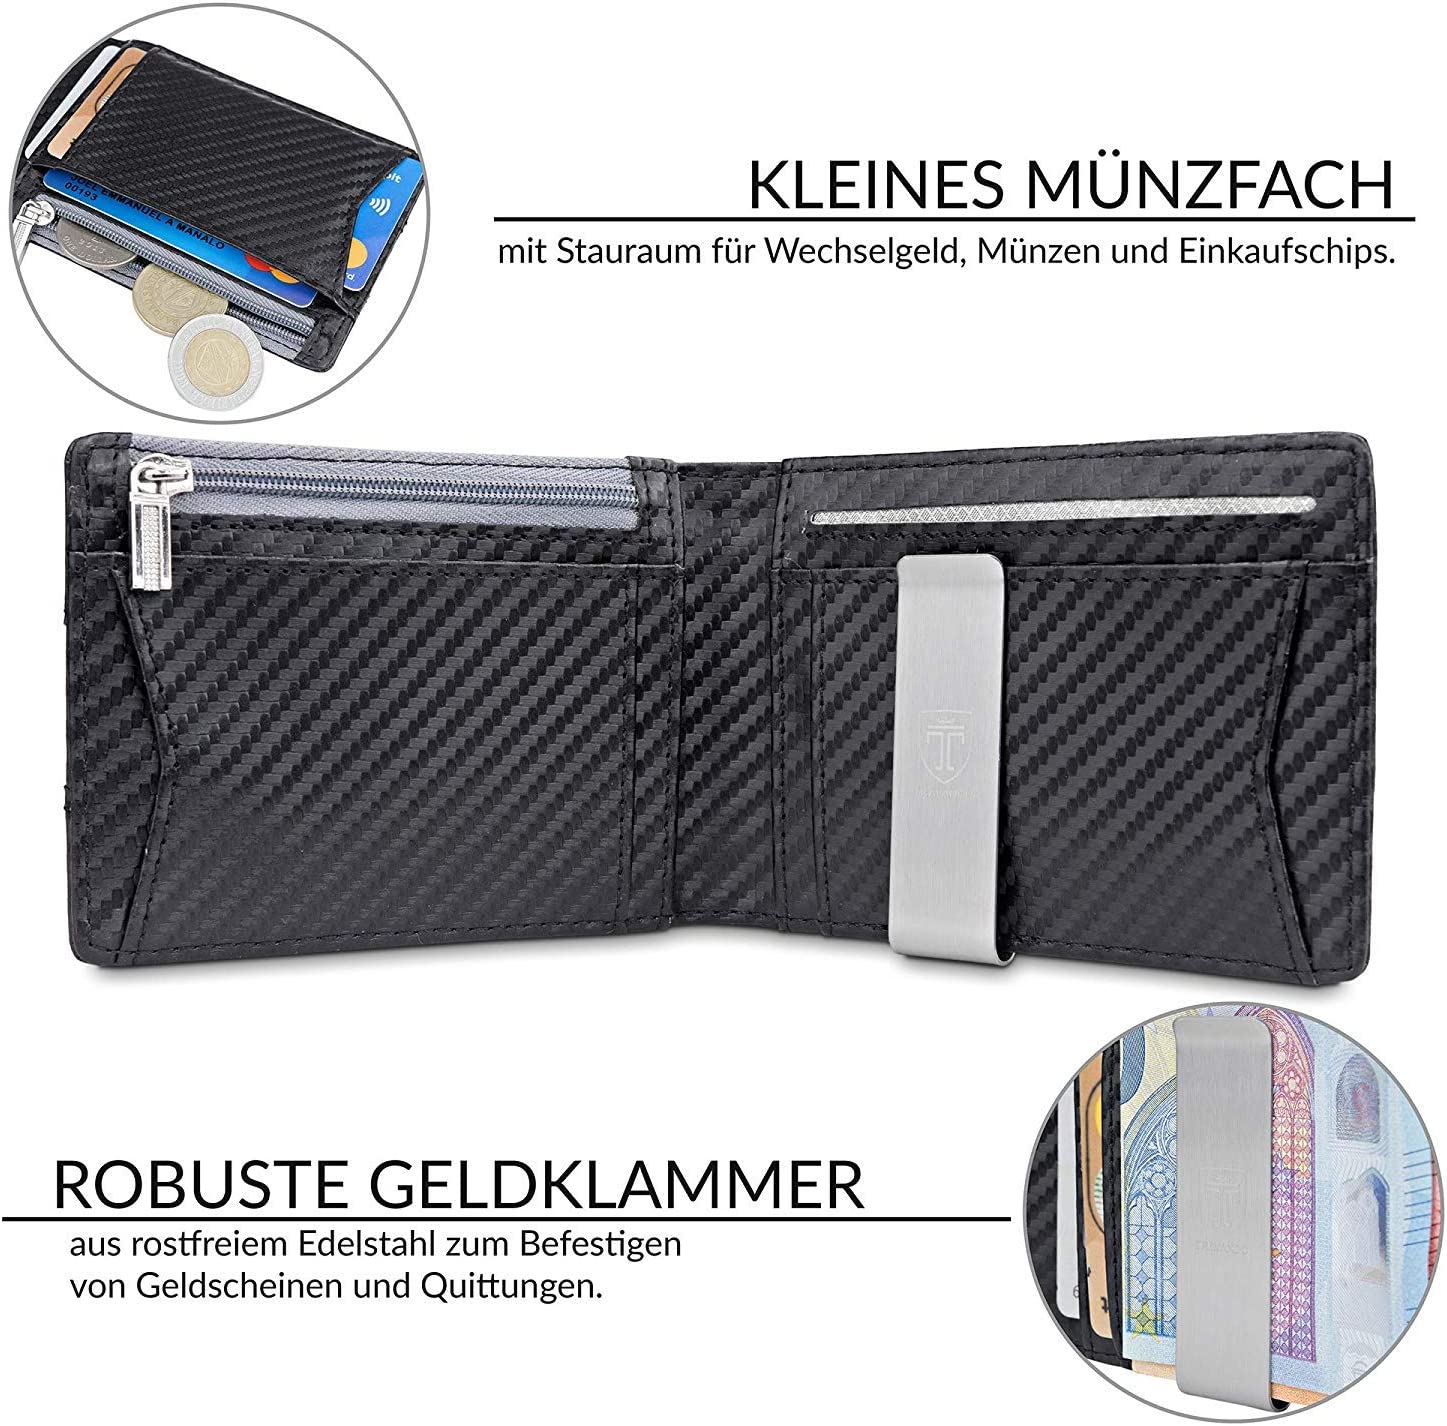 RFID Blocking 10 Card Slots TRAVANDO /® Slim WalletAmsterdam Black /& White Designed in Germany Thin Bifold Money Clip Wallet with Gift Box Perfect Gift for Men with Coin Pocket